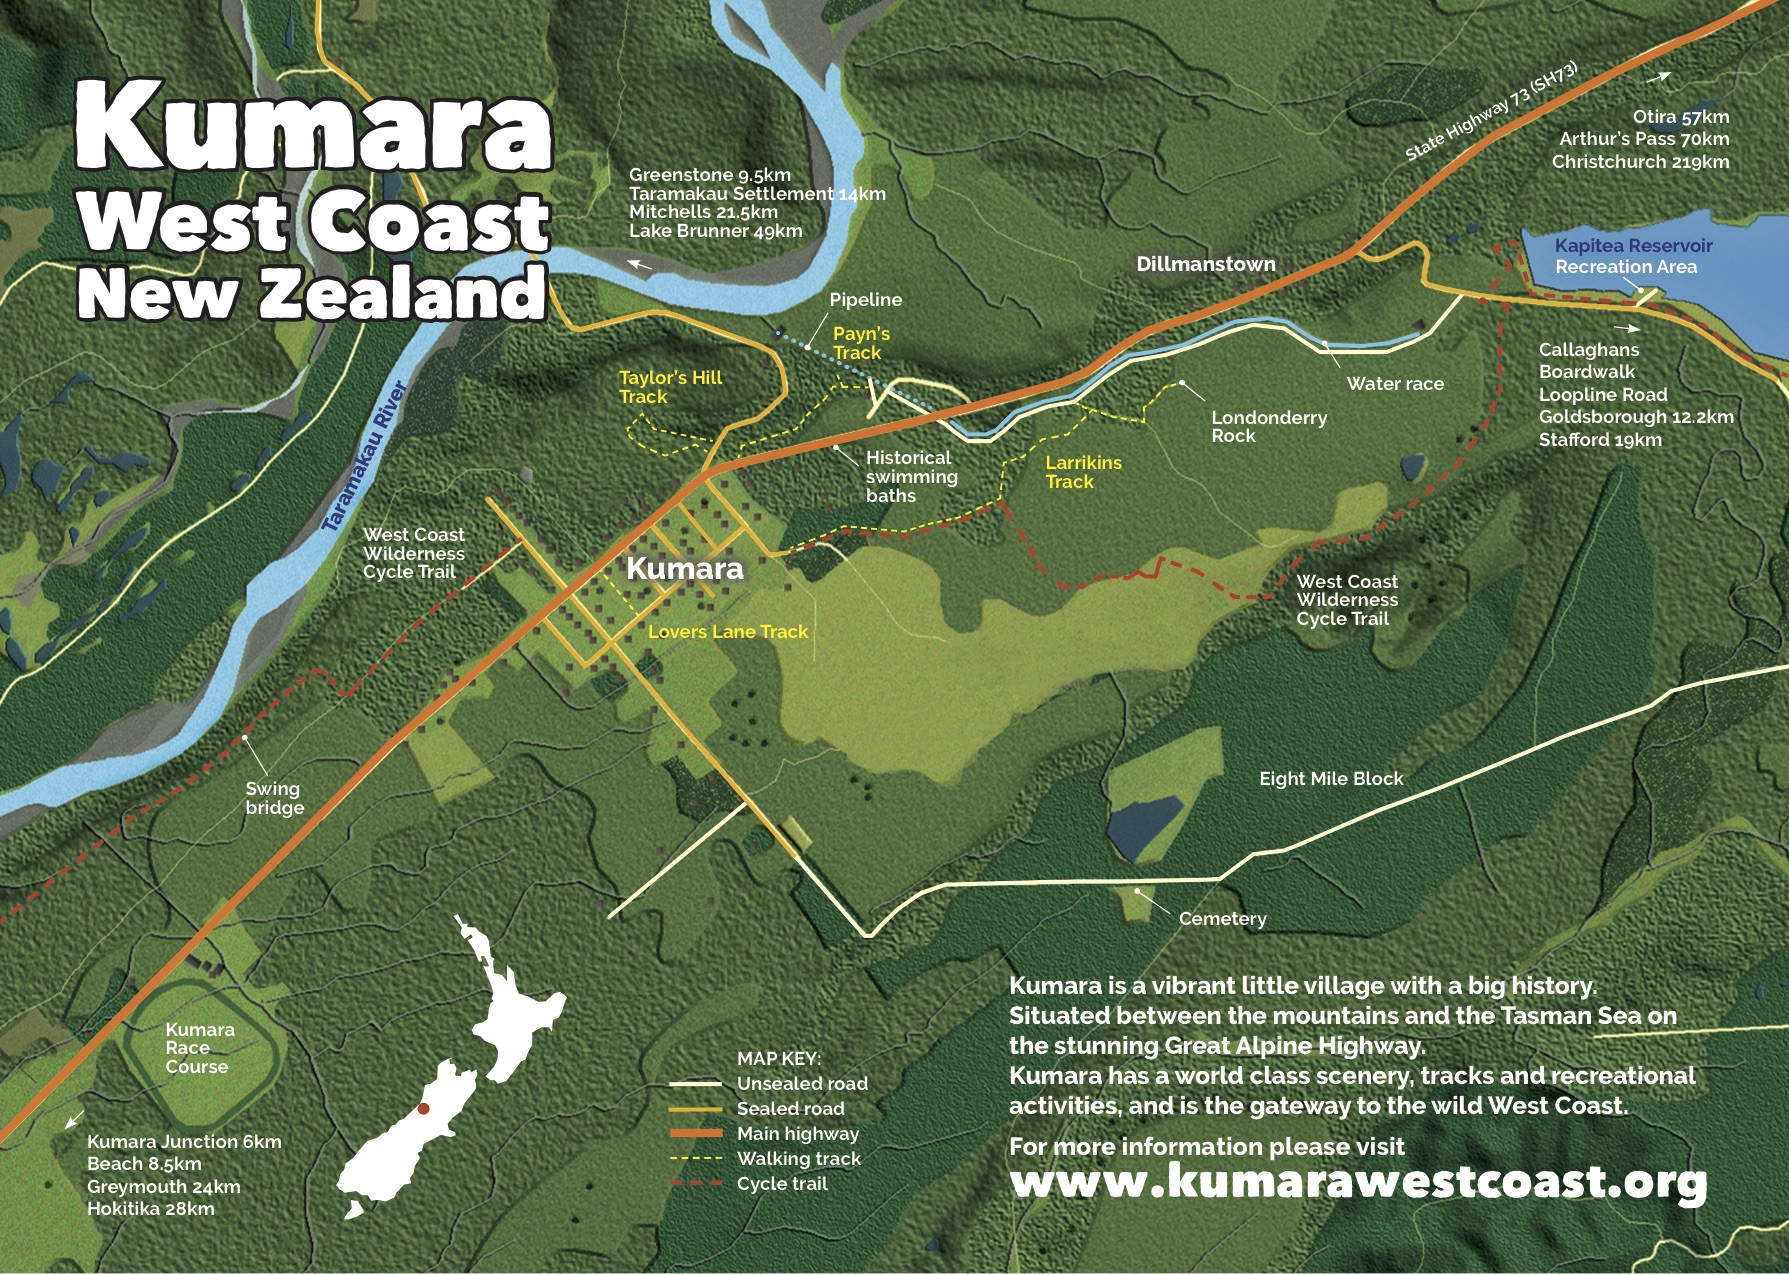 Kumara town map, accommodation and activity guide. Click to enlarge or download full map and key using the QR code below.